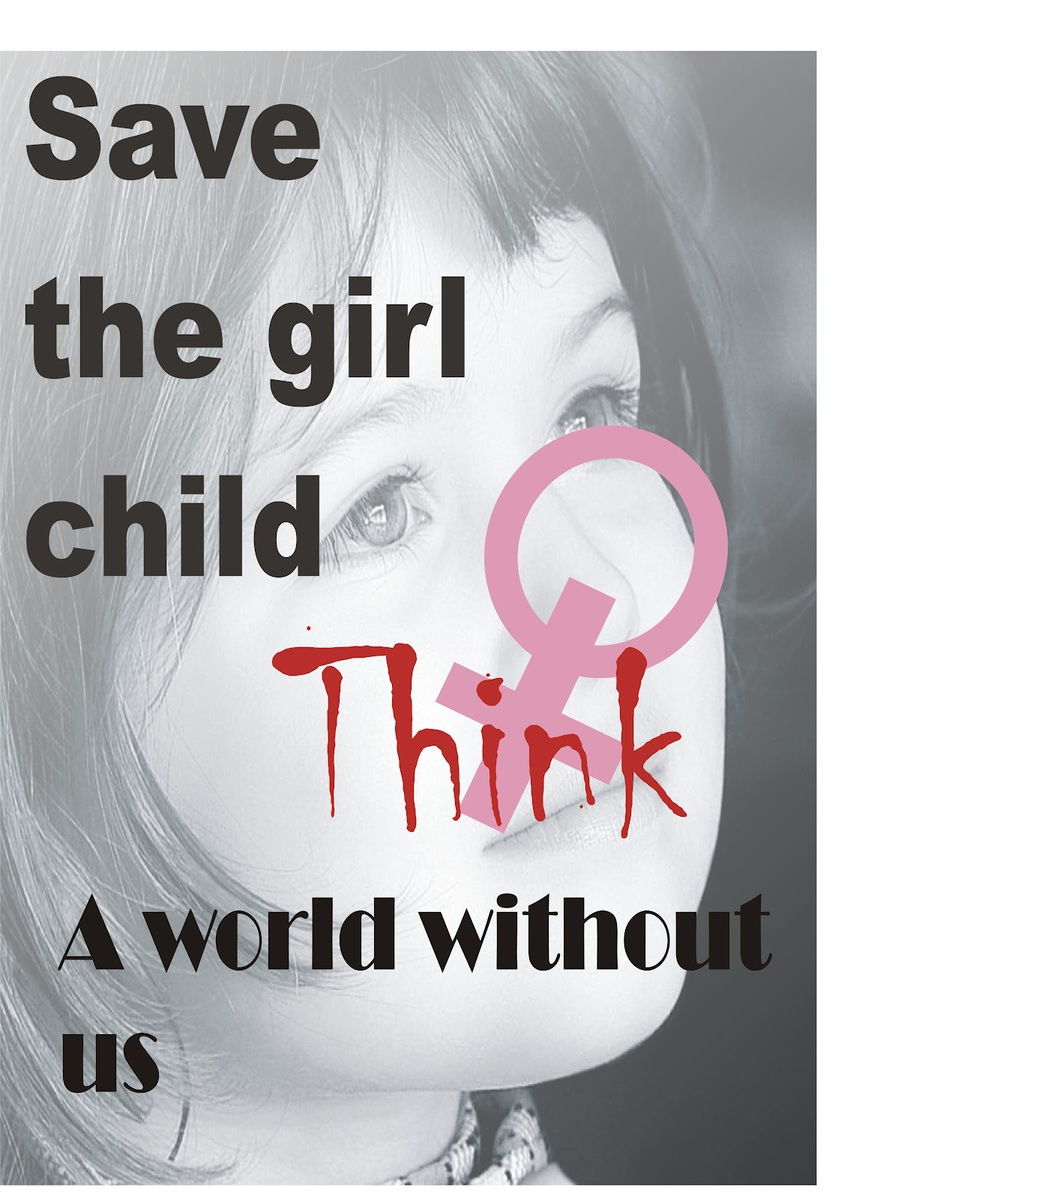 save child girl essay Save the girl child essay save the girl child essay - title ebooks : save the girl child essay - category : kindle and ebooks pdf - author : ~ unidentified.